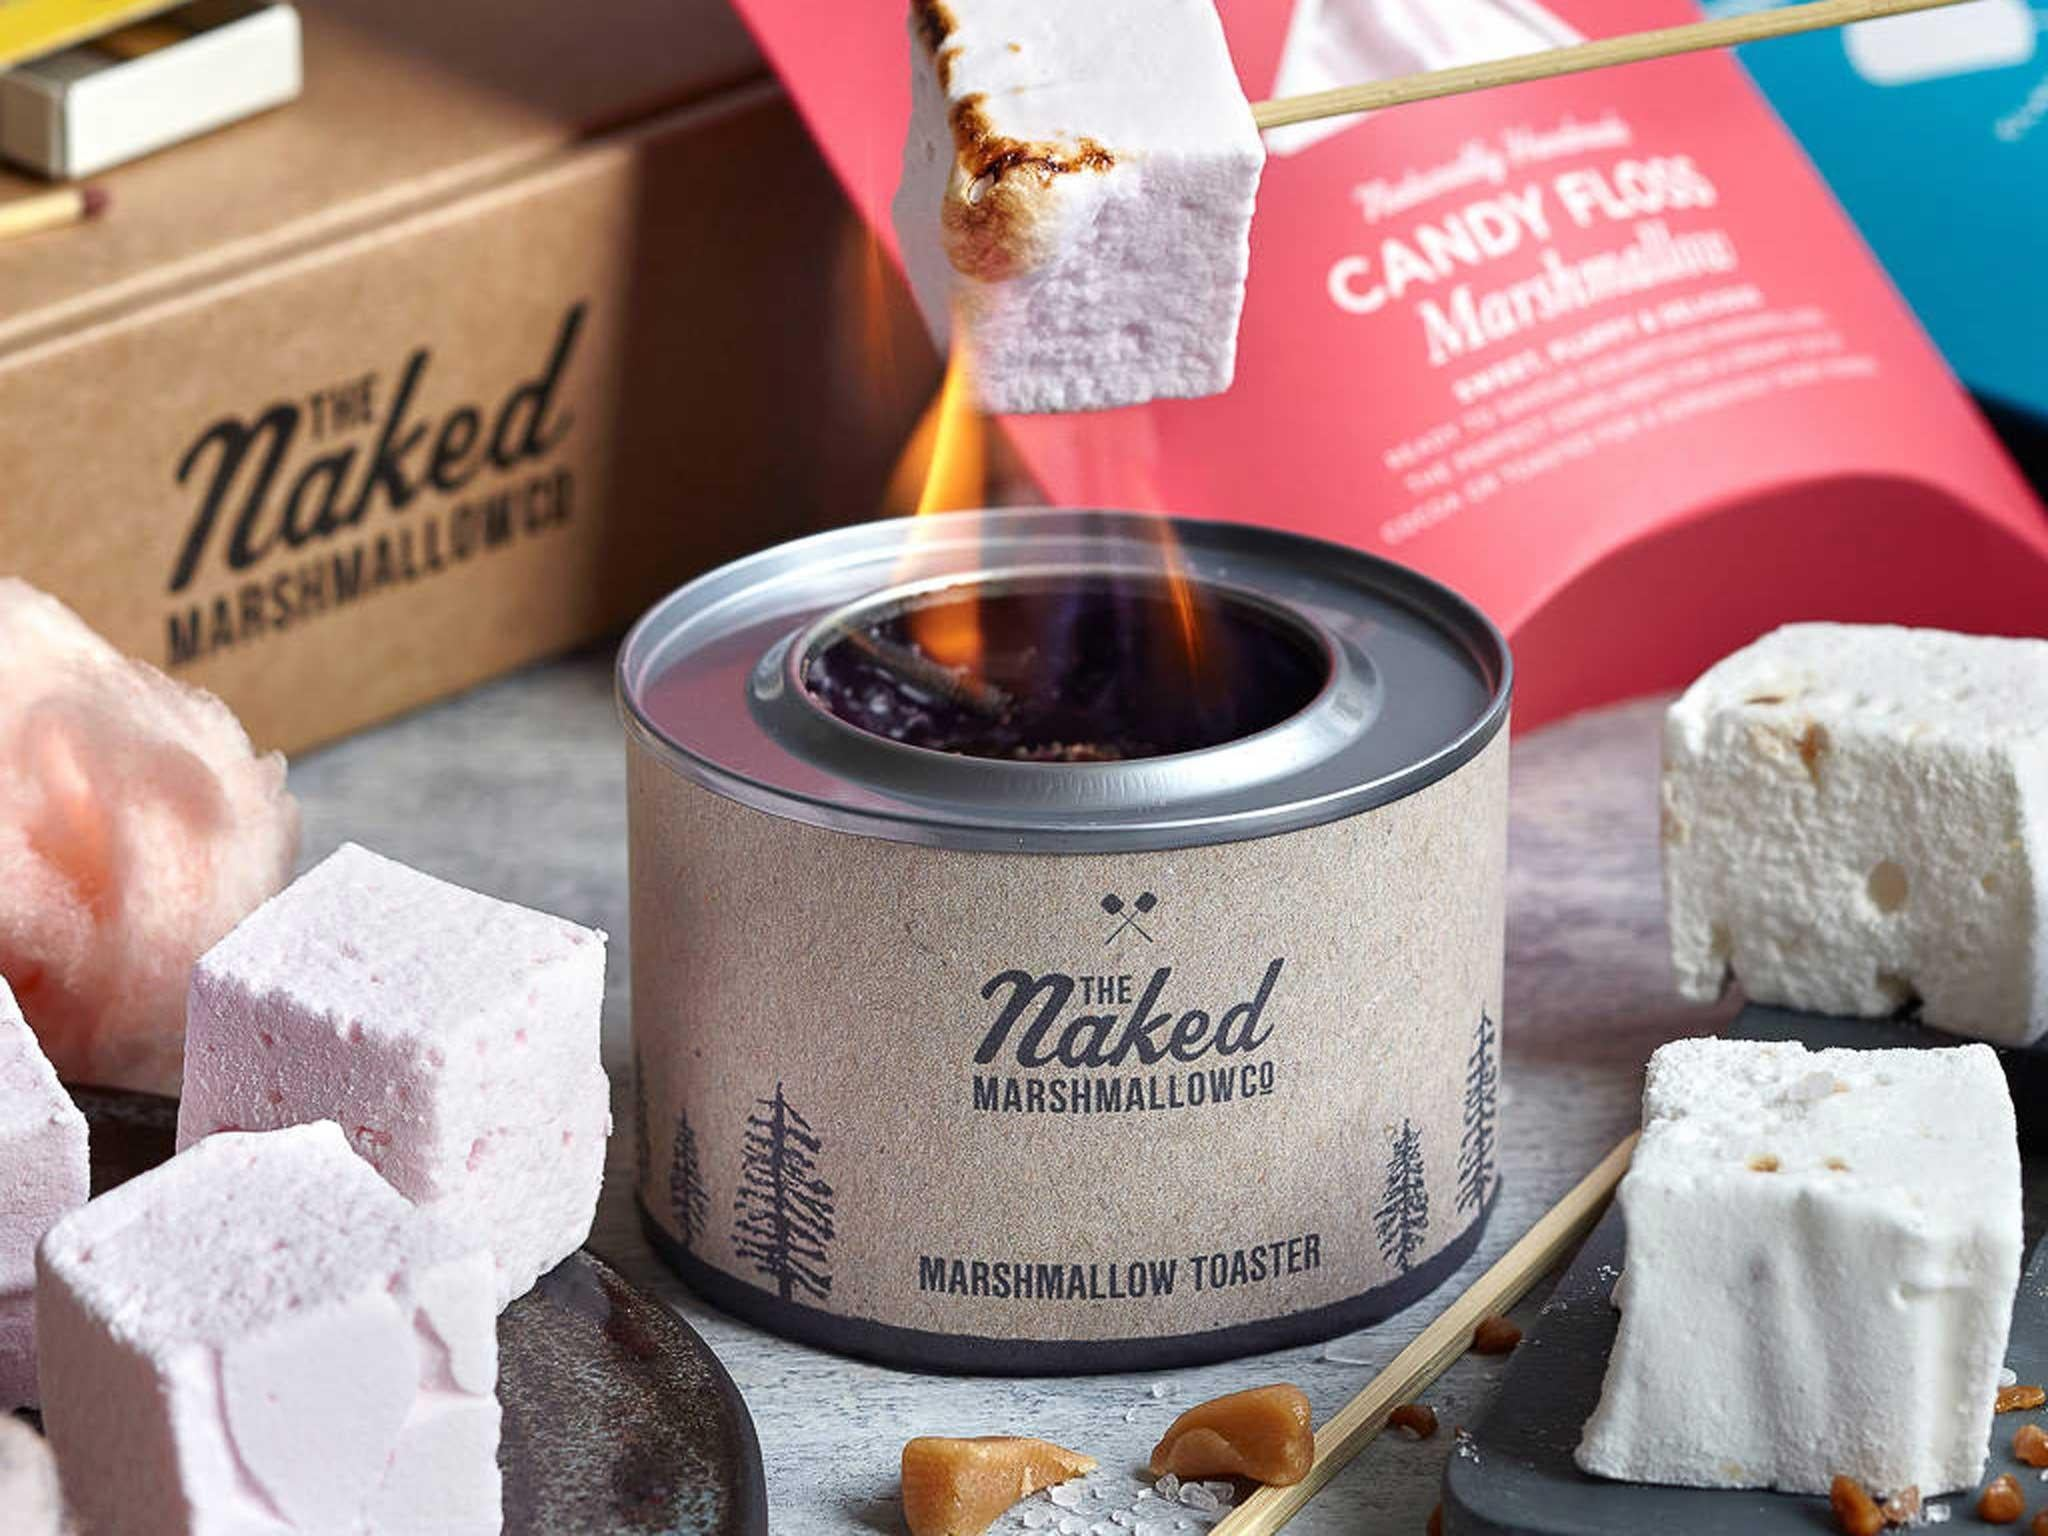 13 best diy food kits the independent naked marshmallow marshmallow toasting kit 20 not on the high street solutioingenieria Image collections